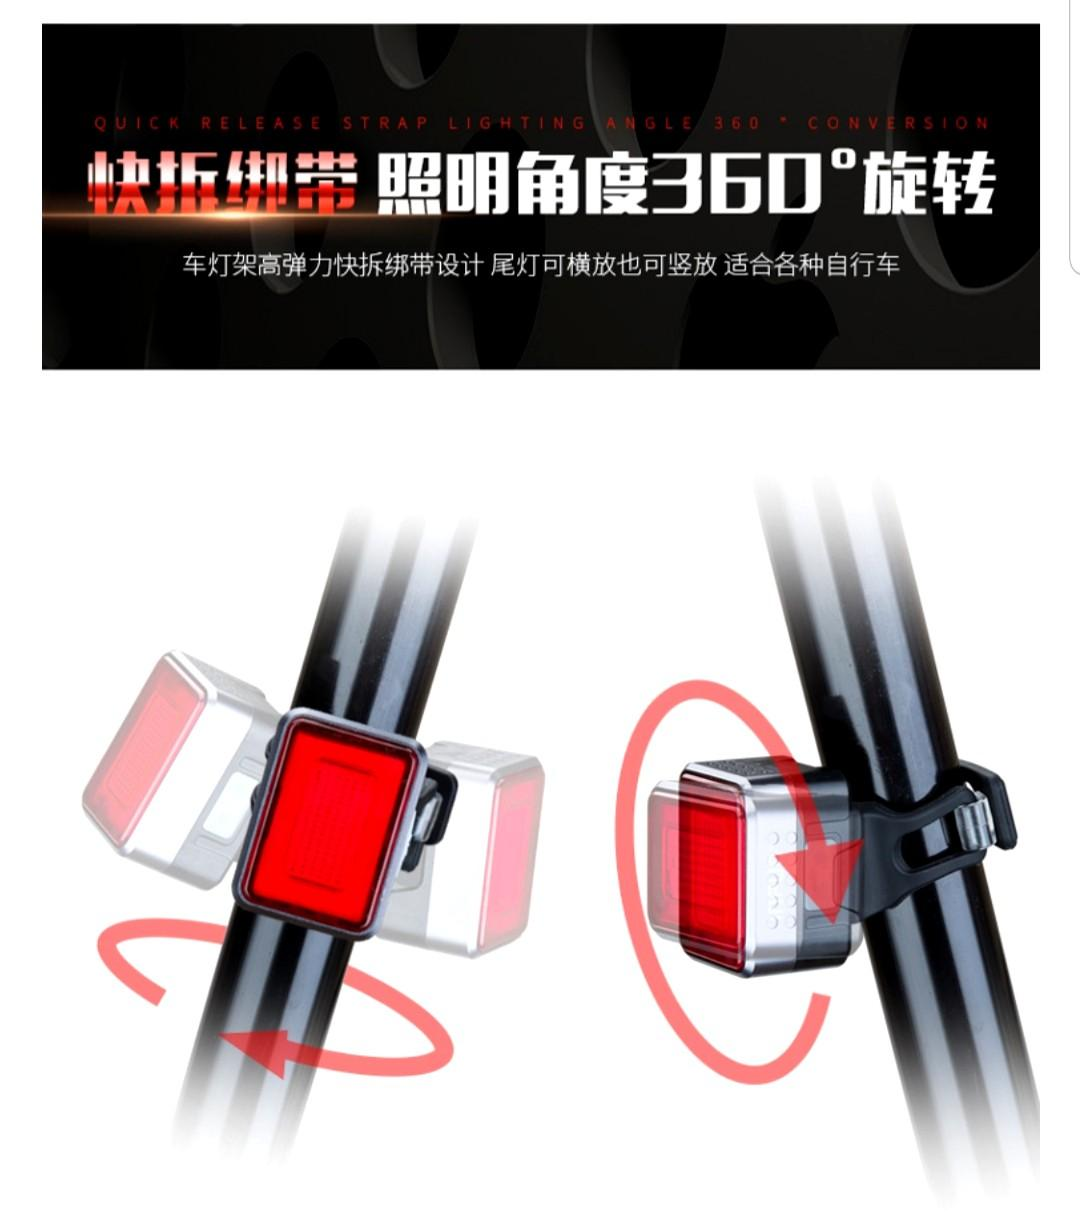 Quick release Bicycle Rear Light For Bike Automatic Brake Induction Taillight